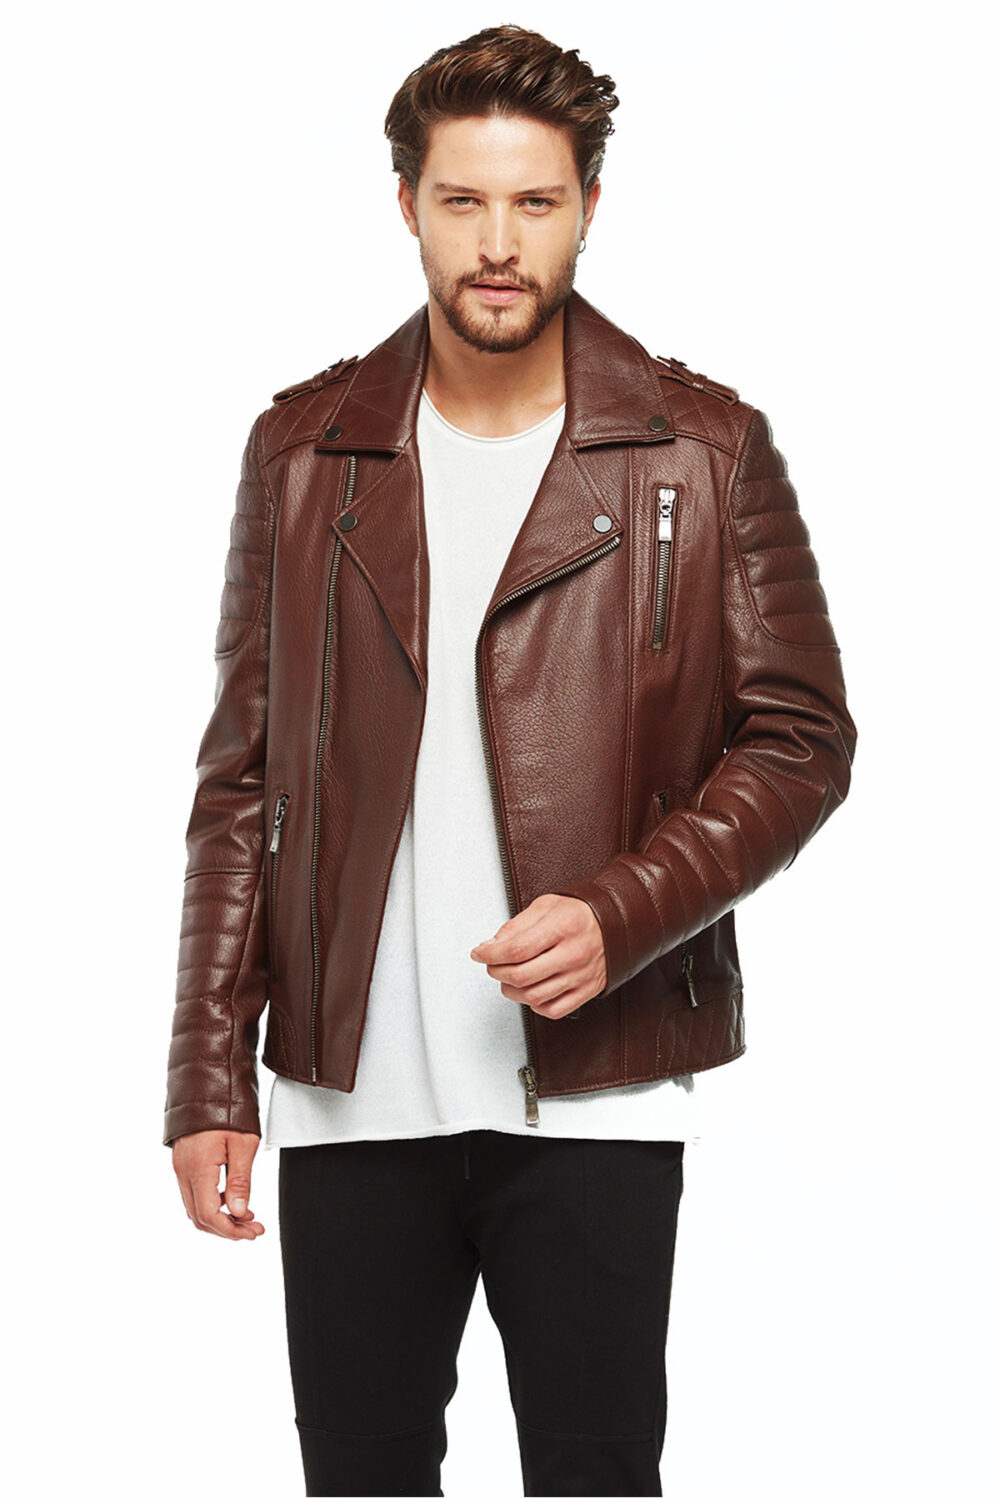 stylish brown leather jacket outfit men's